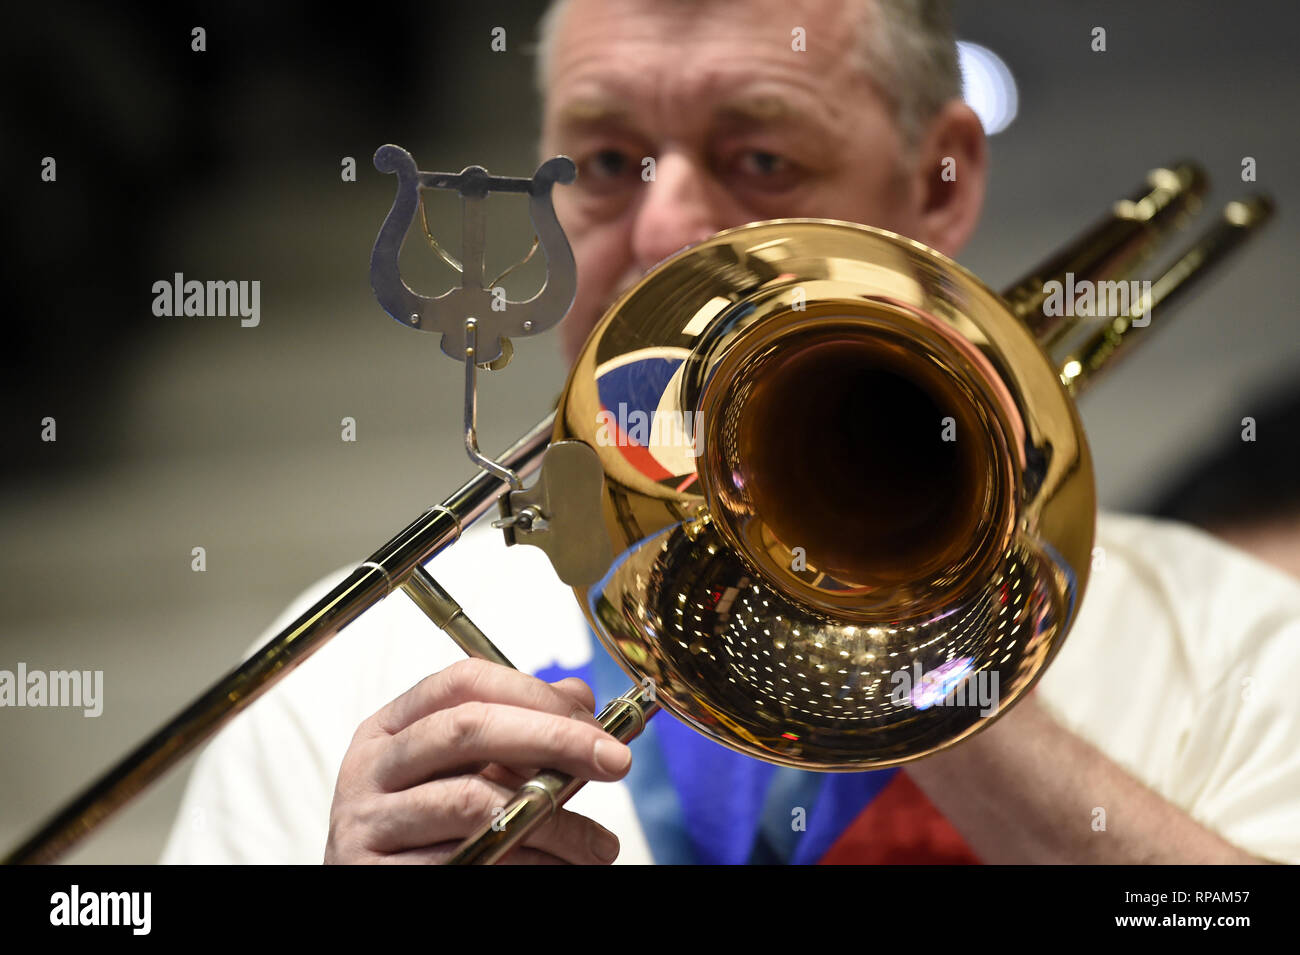 Play Trumpet Stock Photos & Play Trumpet Stock Images - Alamy